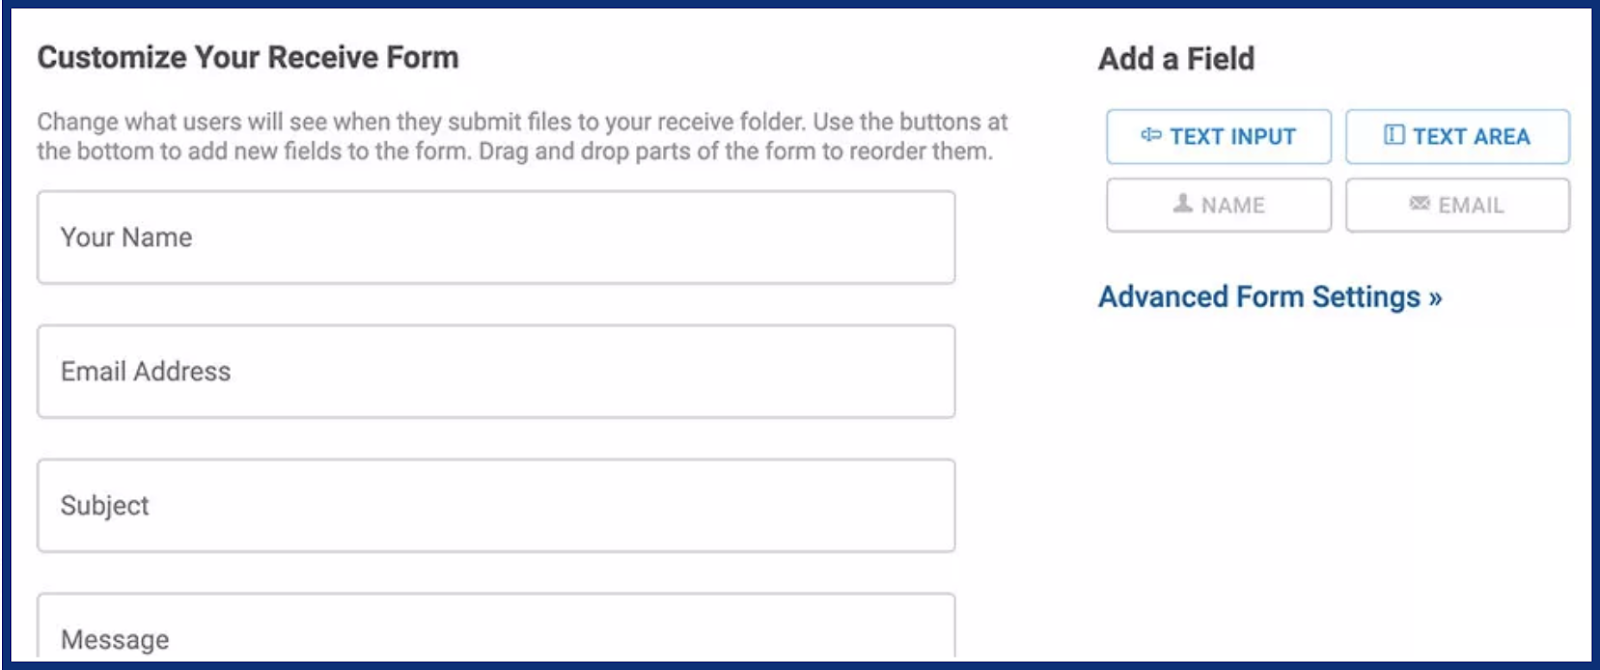 Customize your receive form